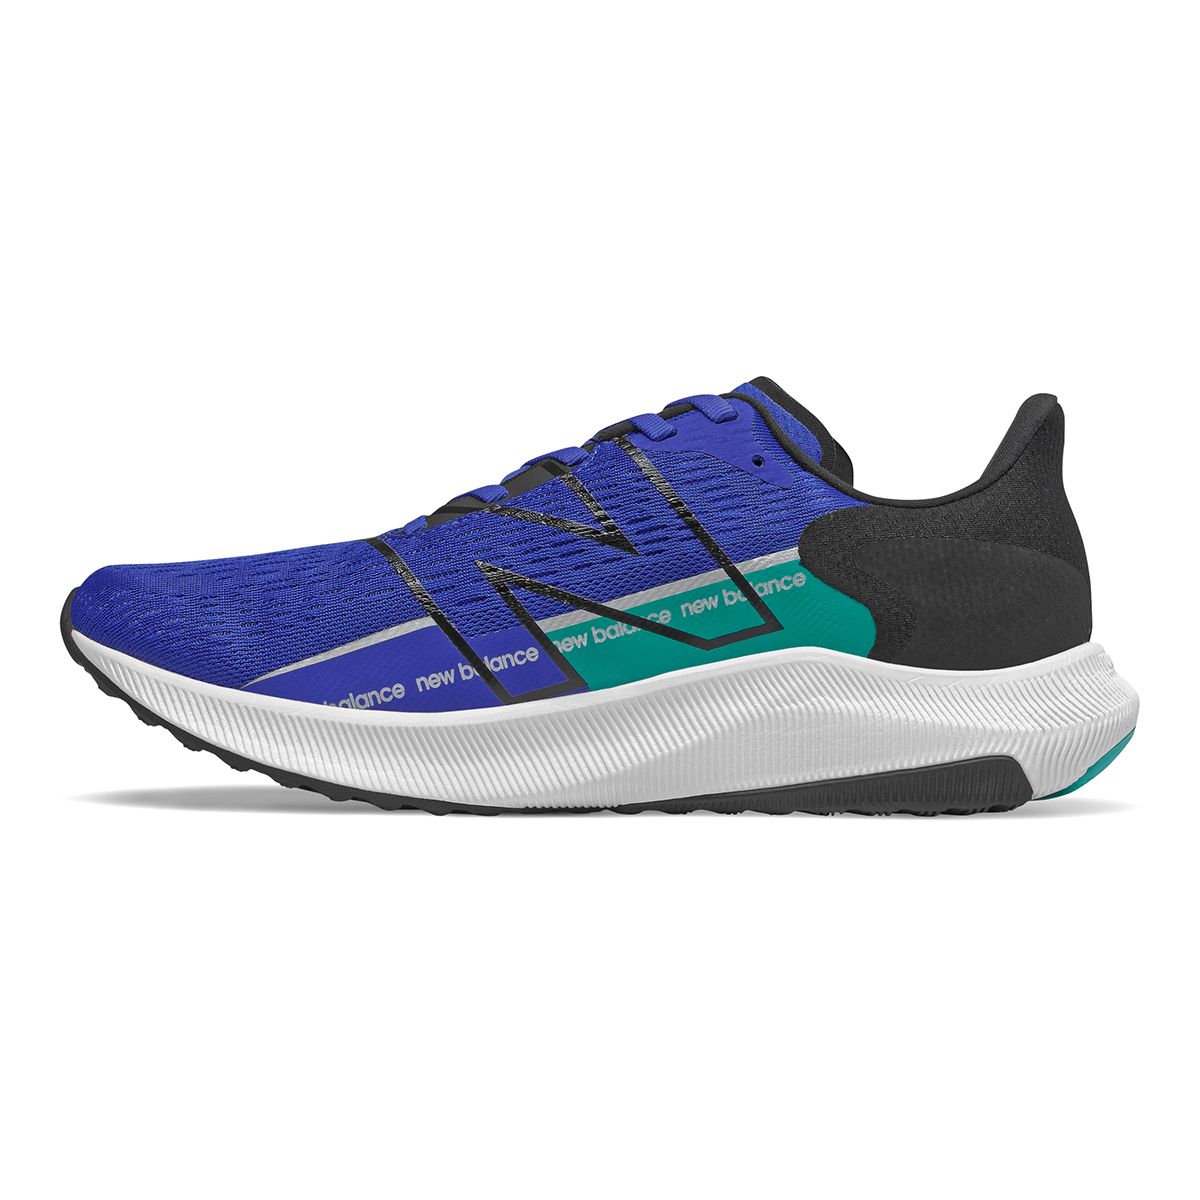 Men's New Balance Fuelcell Propel V2 Running Shoe, , large, image 2